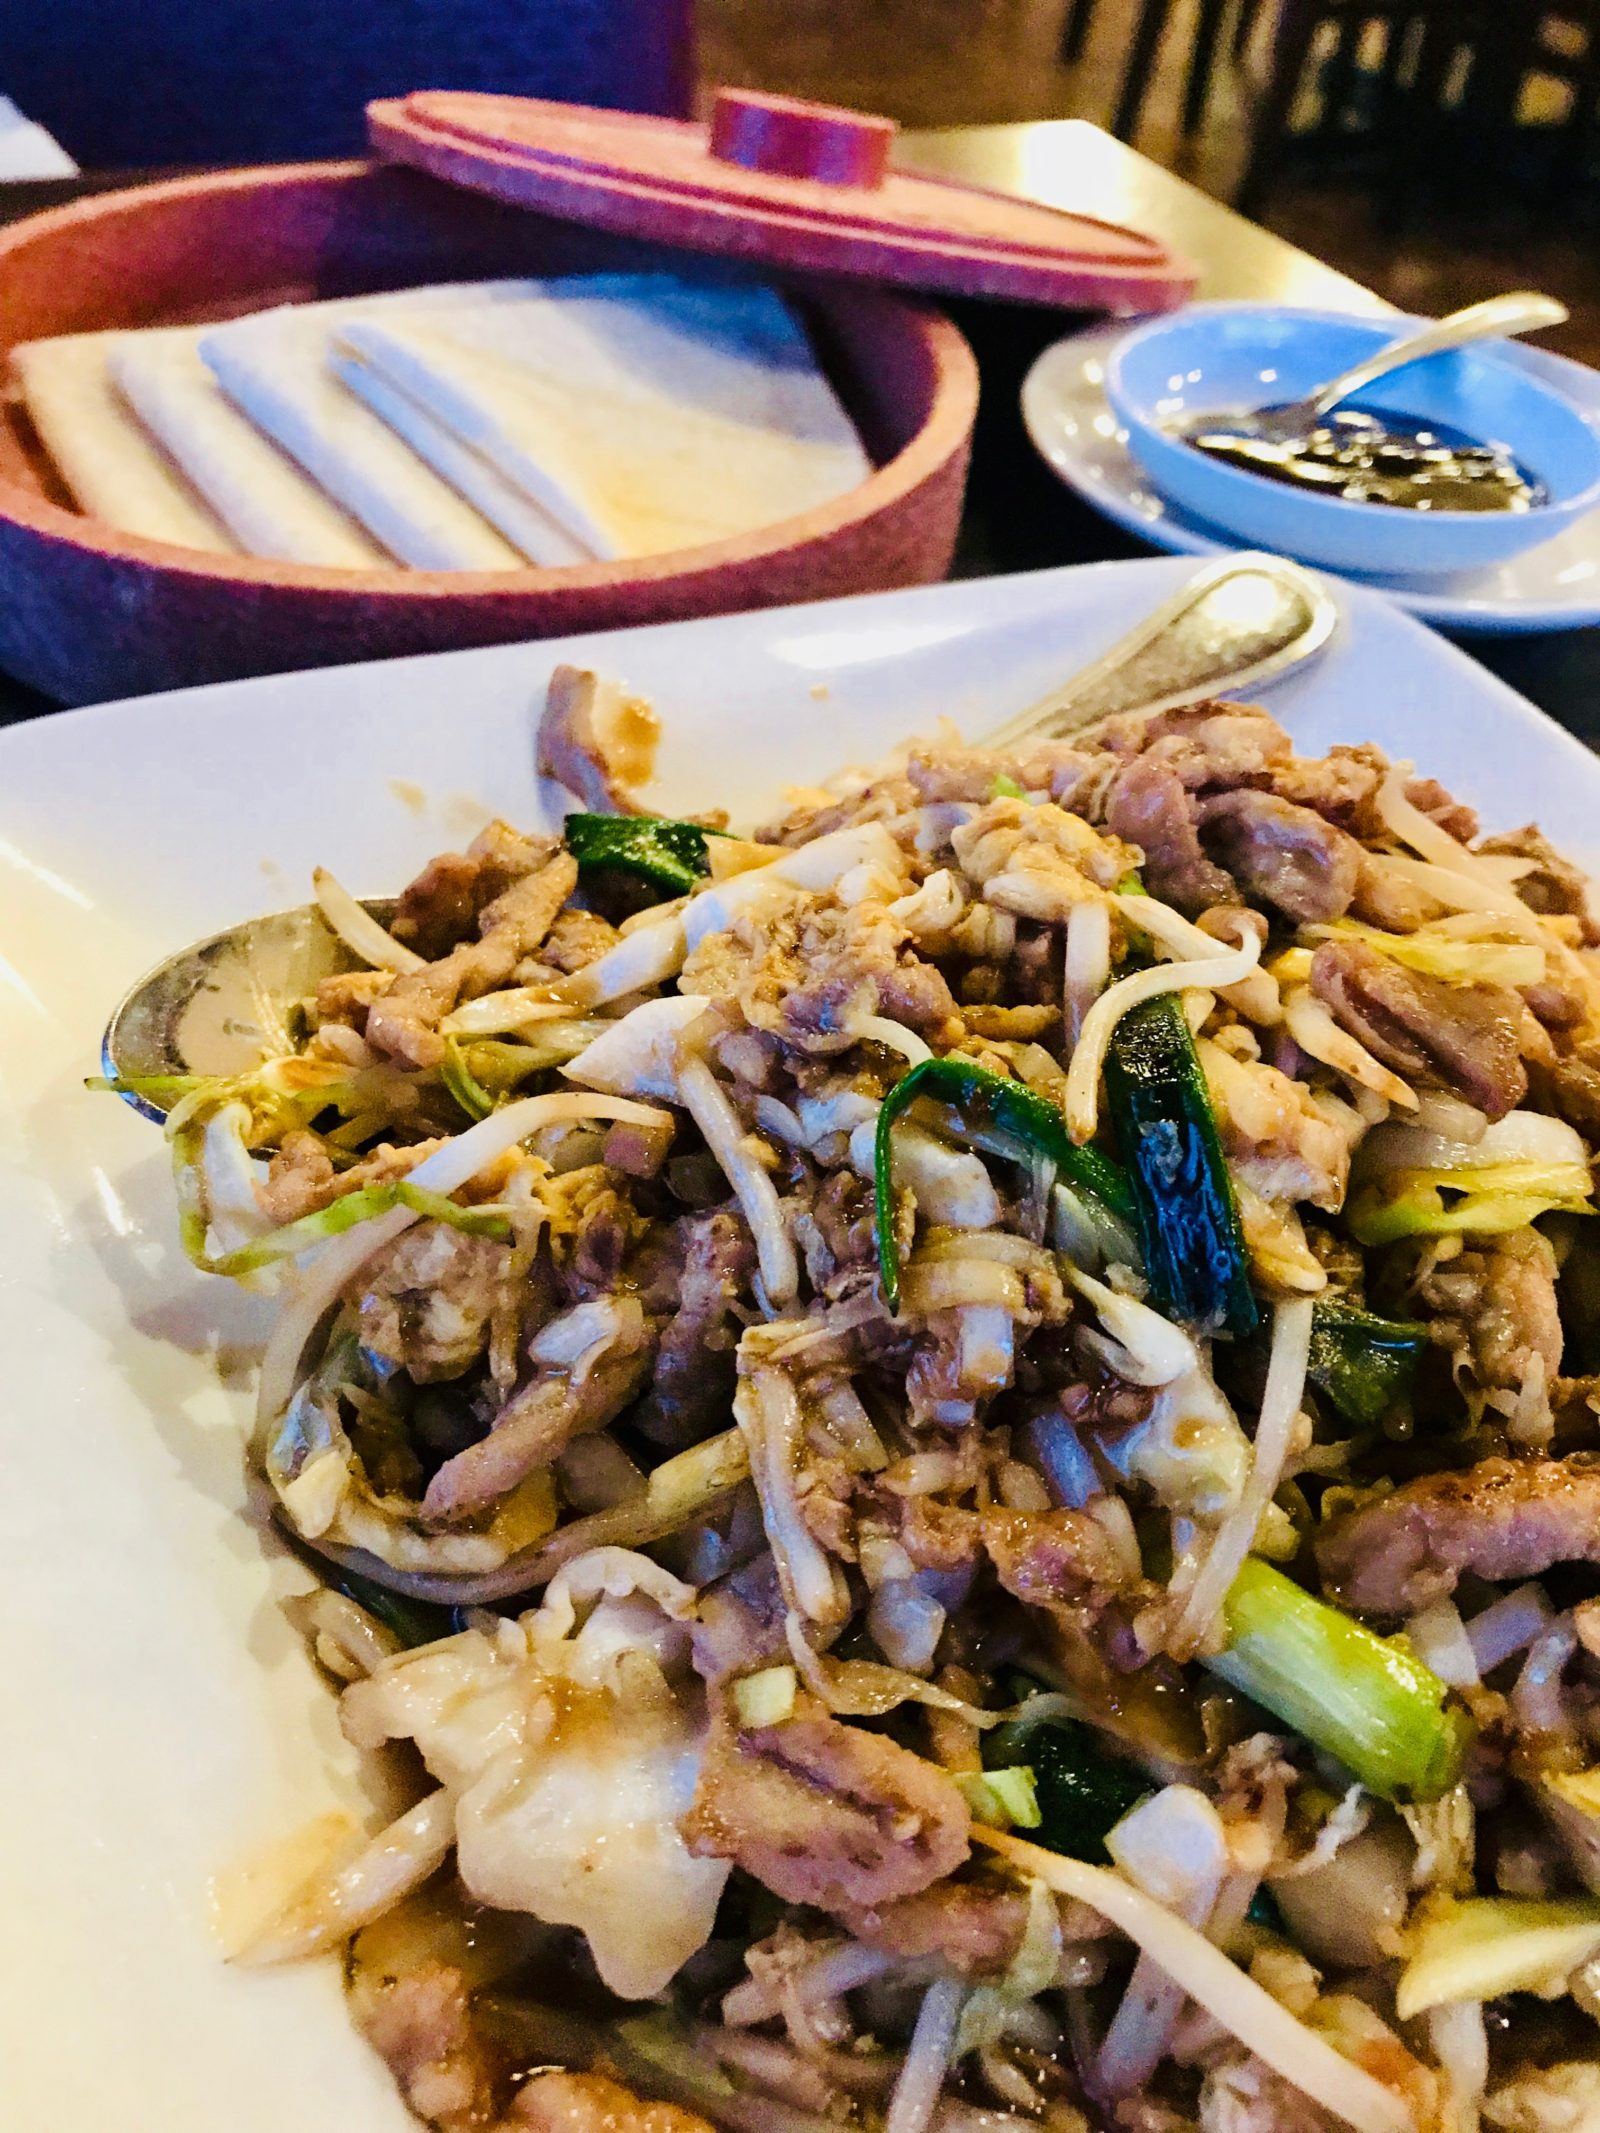 Pick of the Week - Dao Kitchen #2 - Moo Shu pork